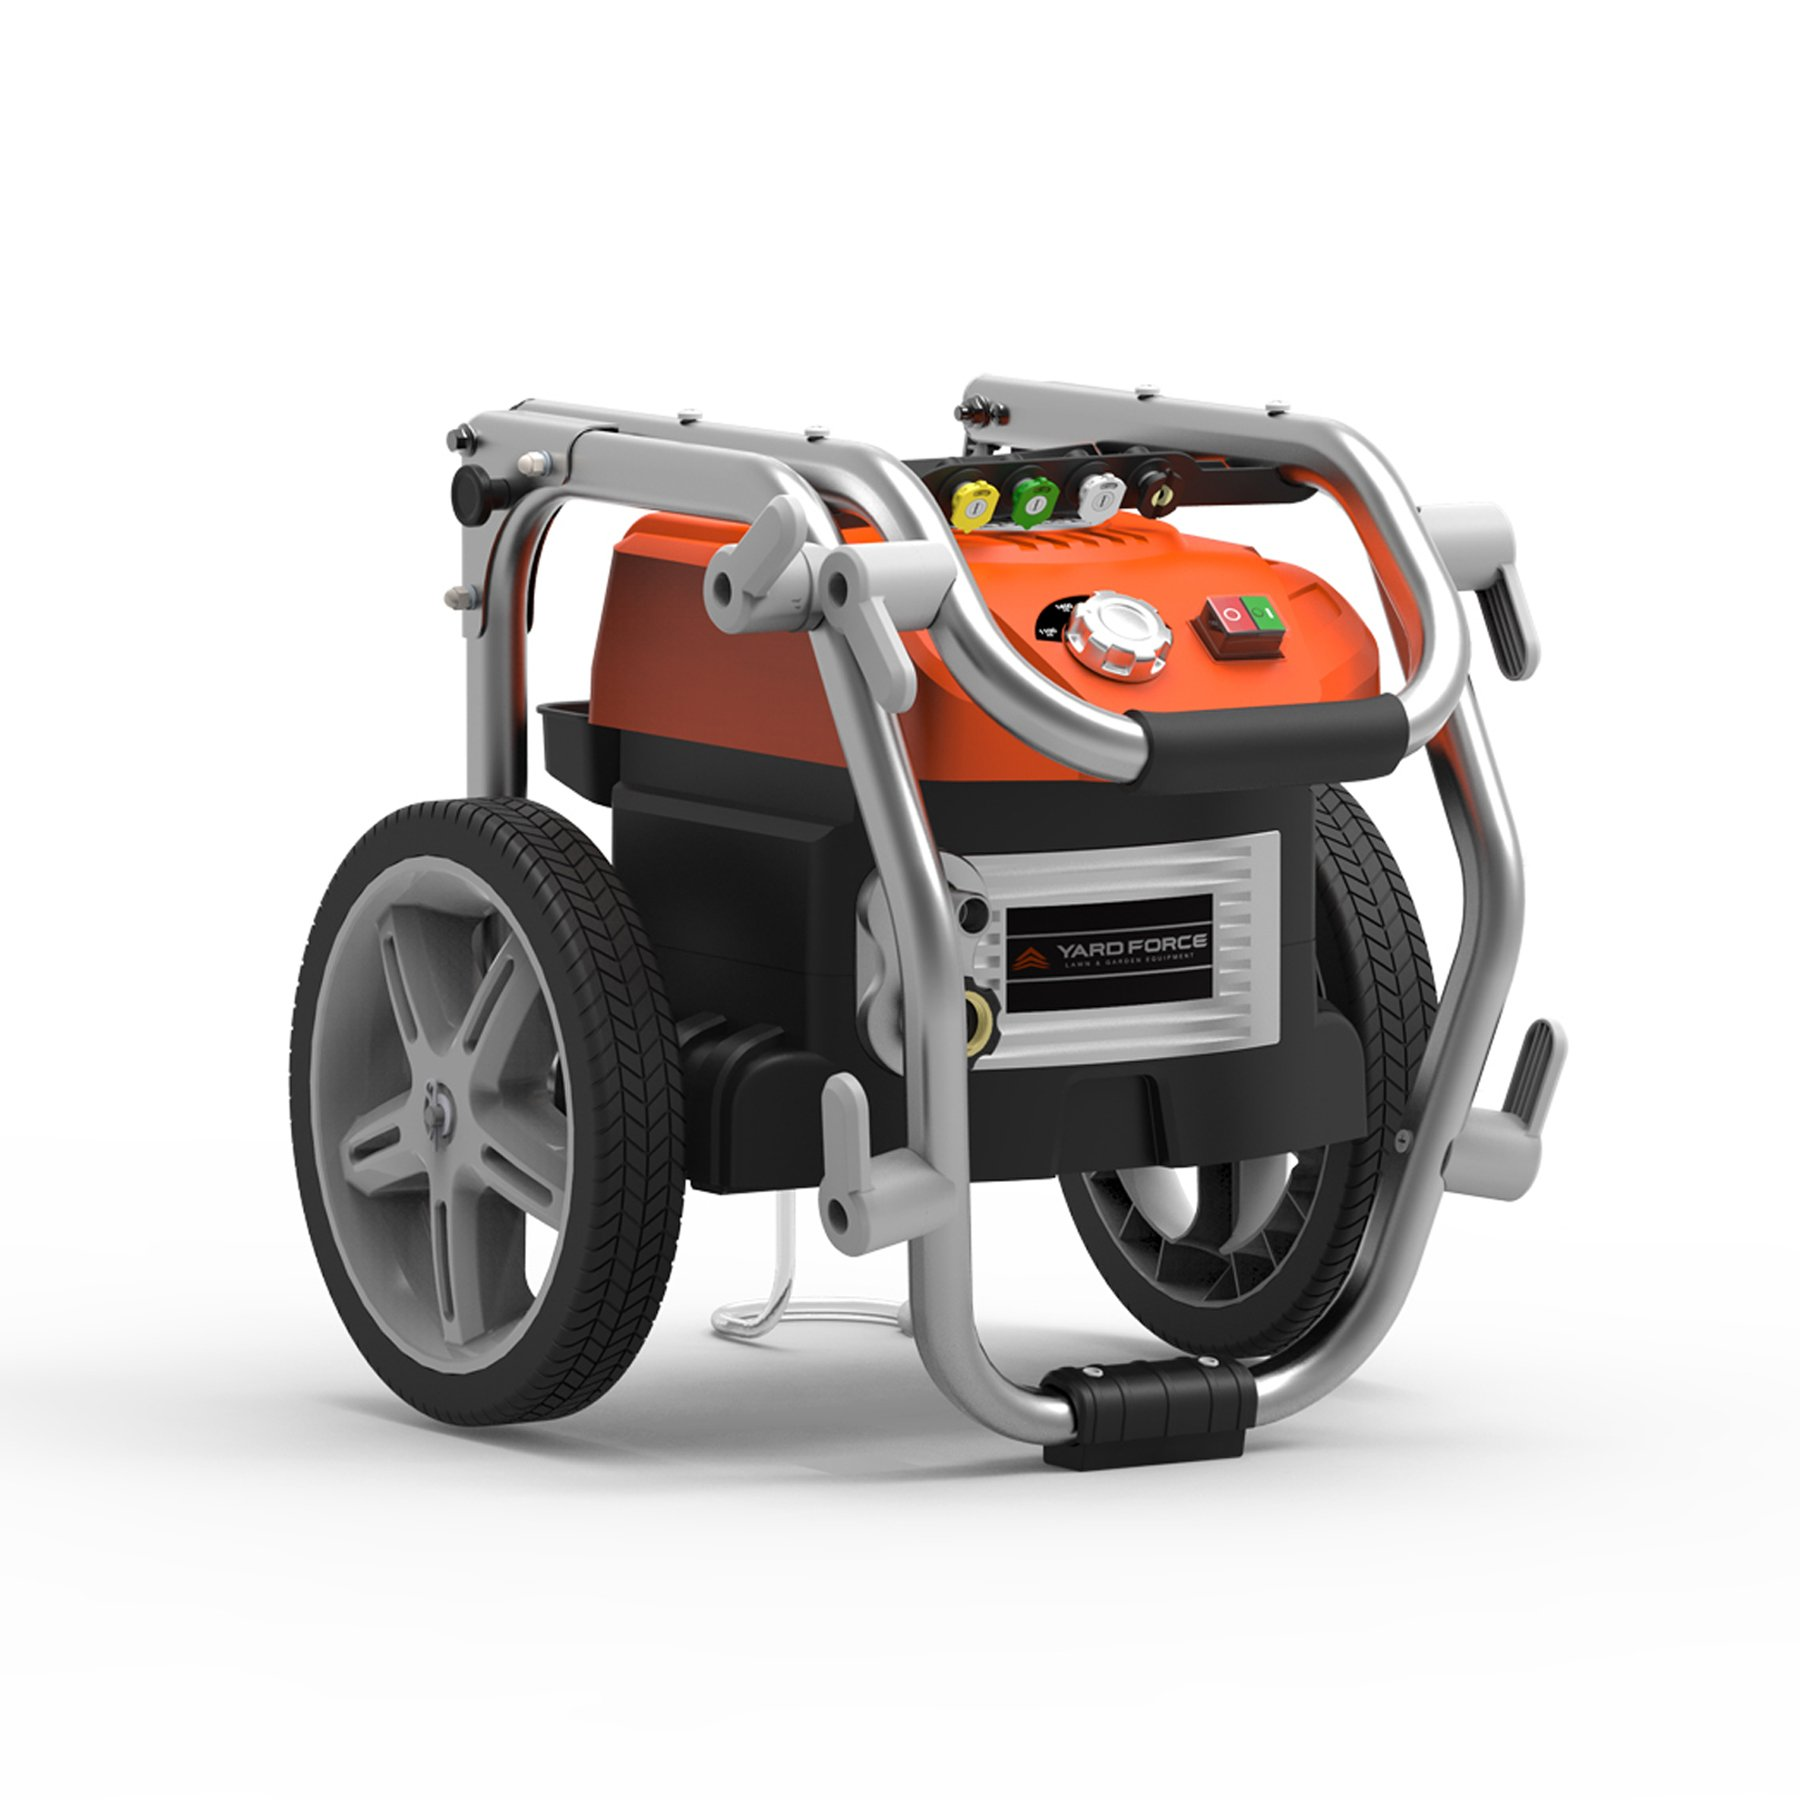 Yard Force YF2200BL Electric Brushless Pressure Washer 2200 PSI by YardForce (Image #2)